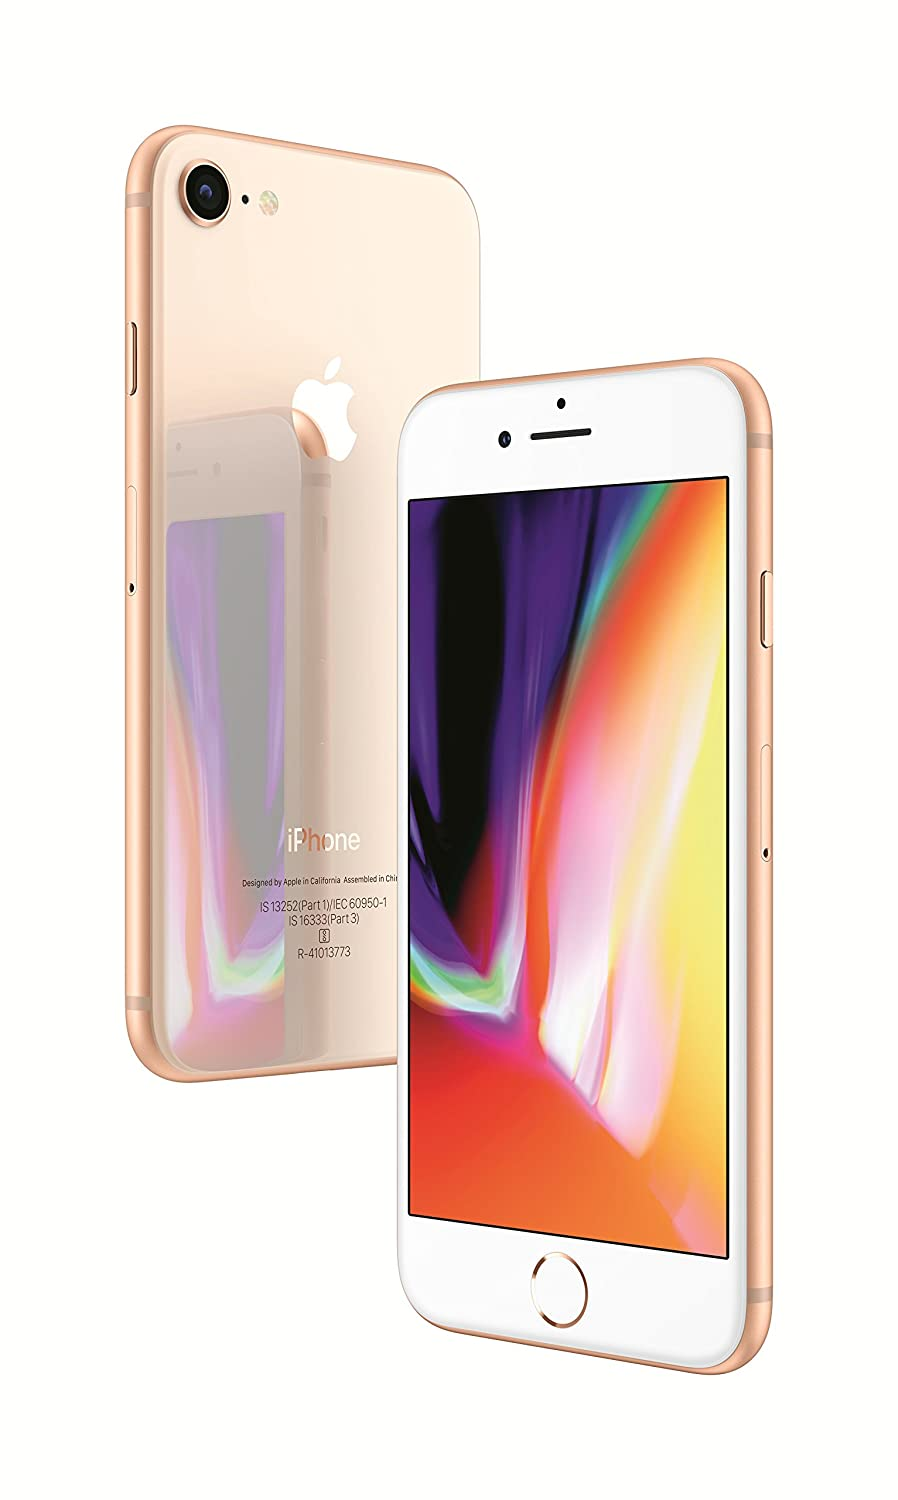 976811b2c65 Apple iPhone 8 (64GB) - Gold  Amazon.in  Electronics